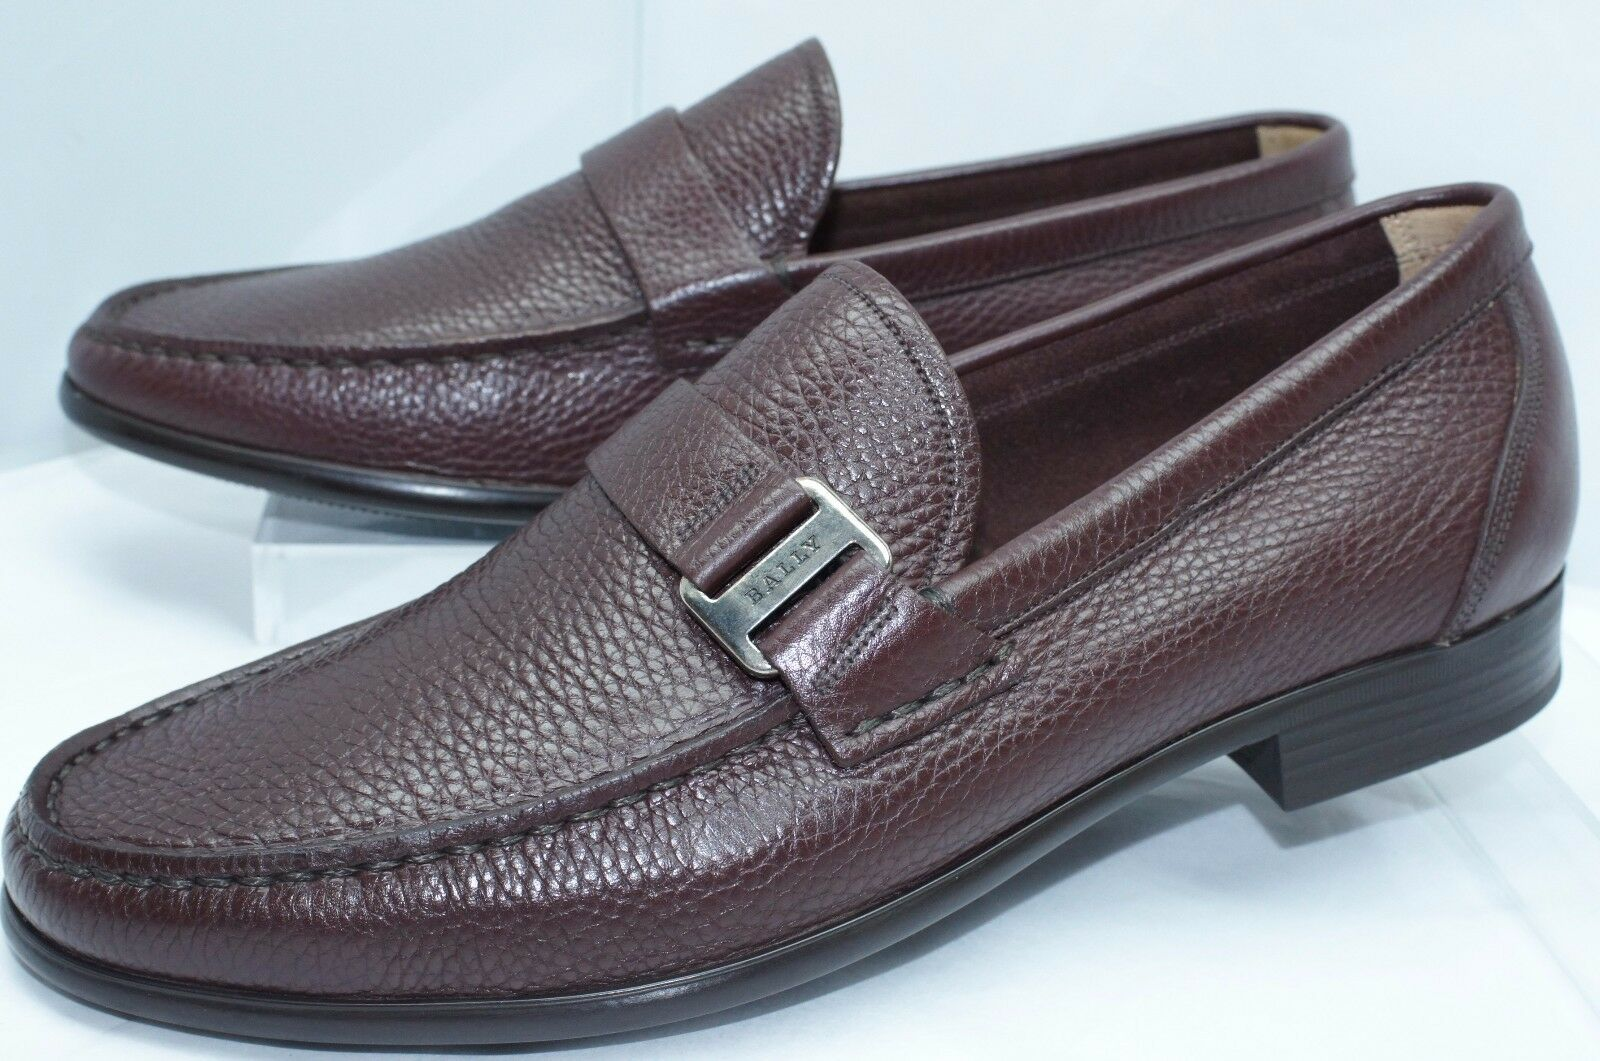 check out a9dad 56c24 New Bally Men s Shoes Drivers Colbar Size 12 Loafers Dress Dress Dress  Leather 9c429c